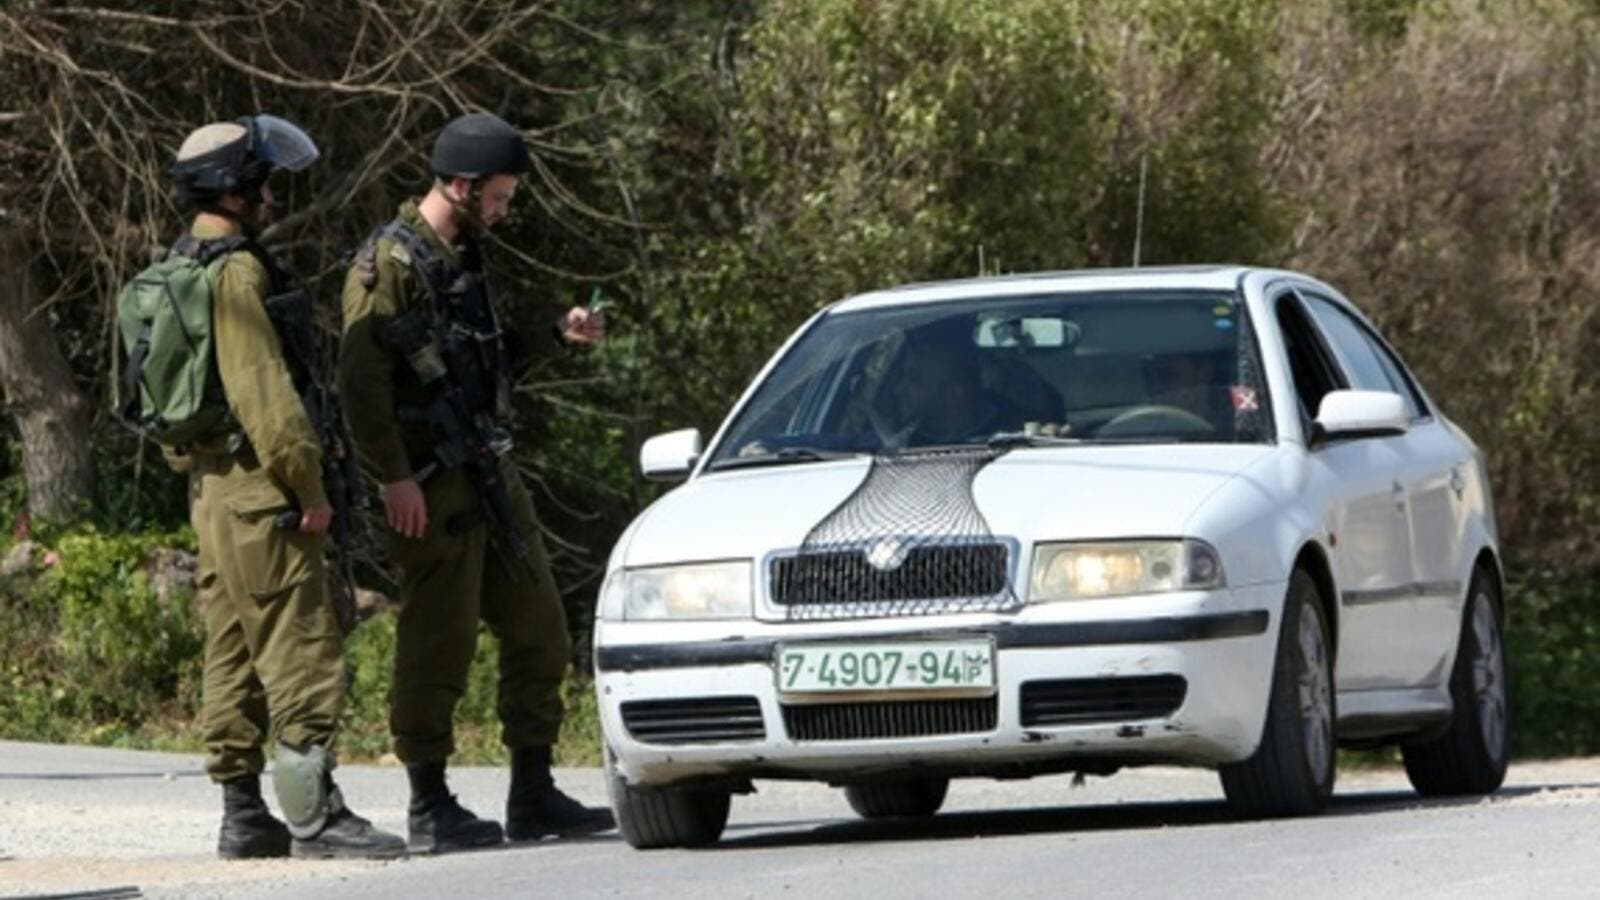 Israeli border guards check a driver near the Palestinian town of Qalqilya in the occupied West Bank. (AFP/Jaafar Ashtiyeh)